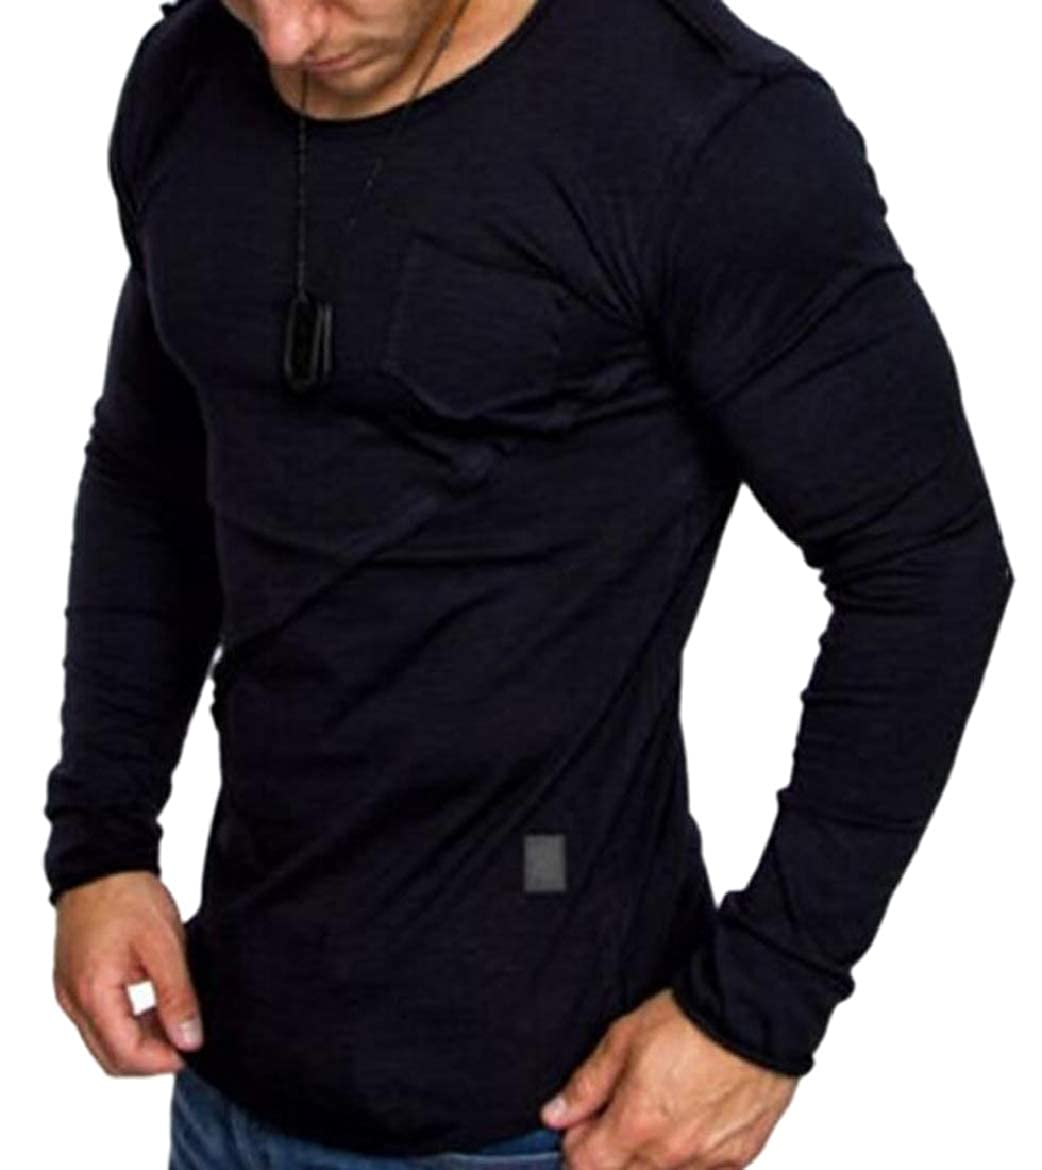 HTOOHTOOH Mens Splicing Tops Loose Fit Long Sleve Pullover Pure Color Casual Tees Top